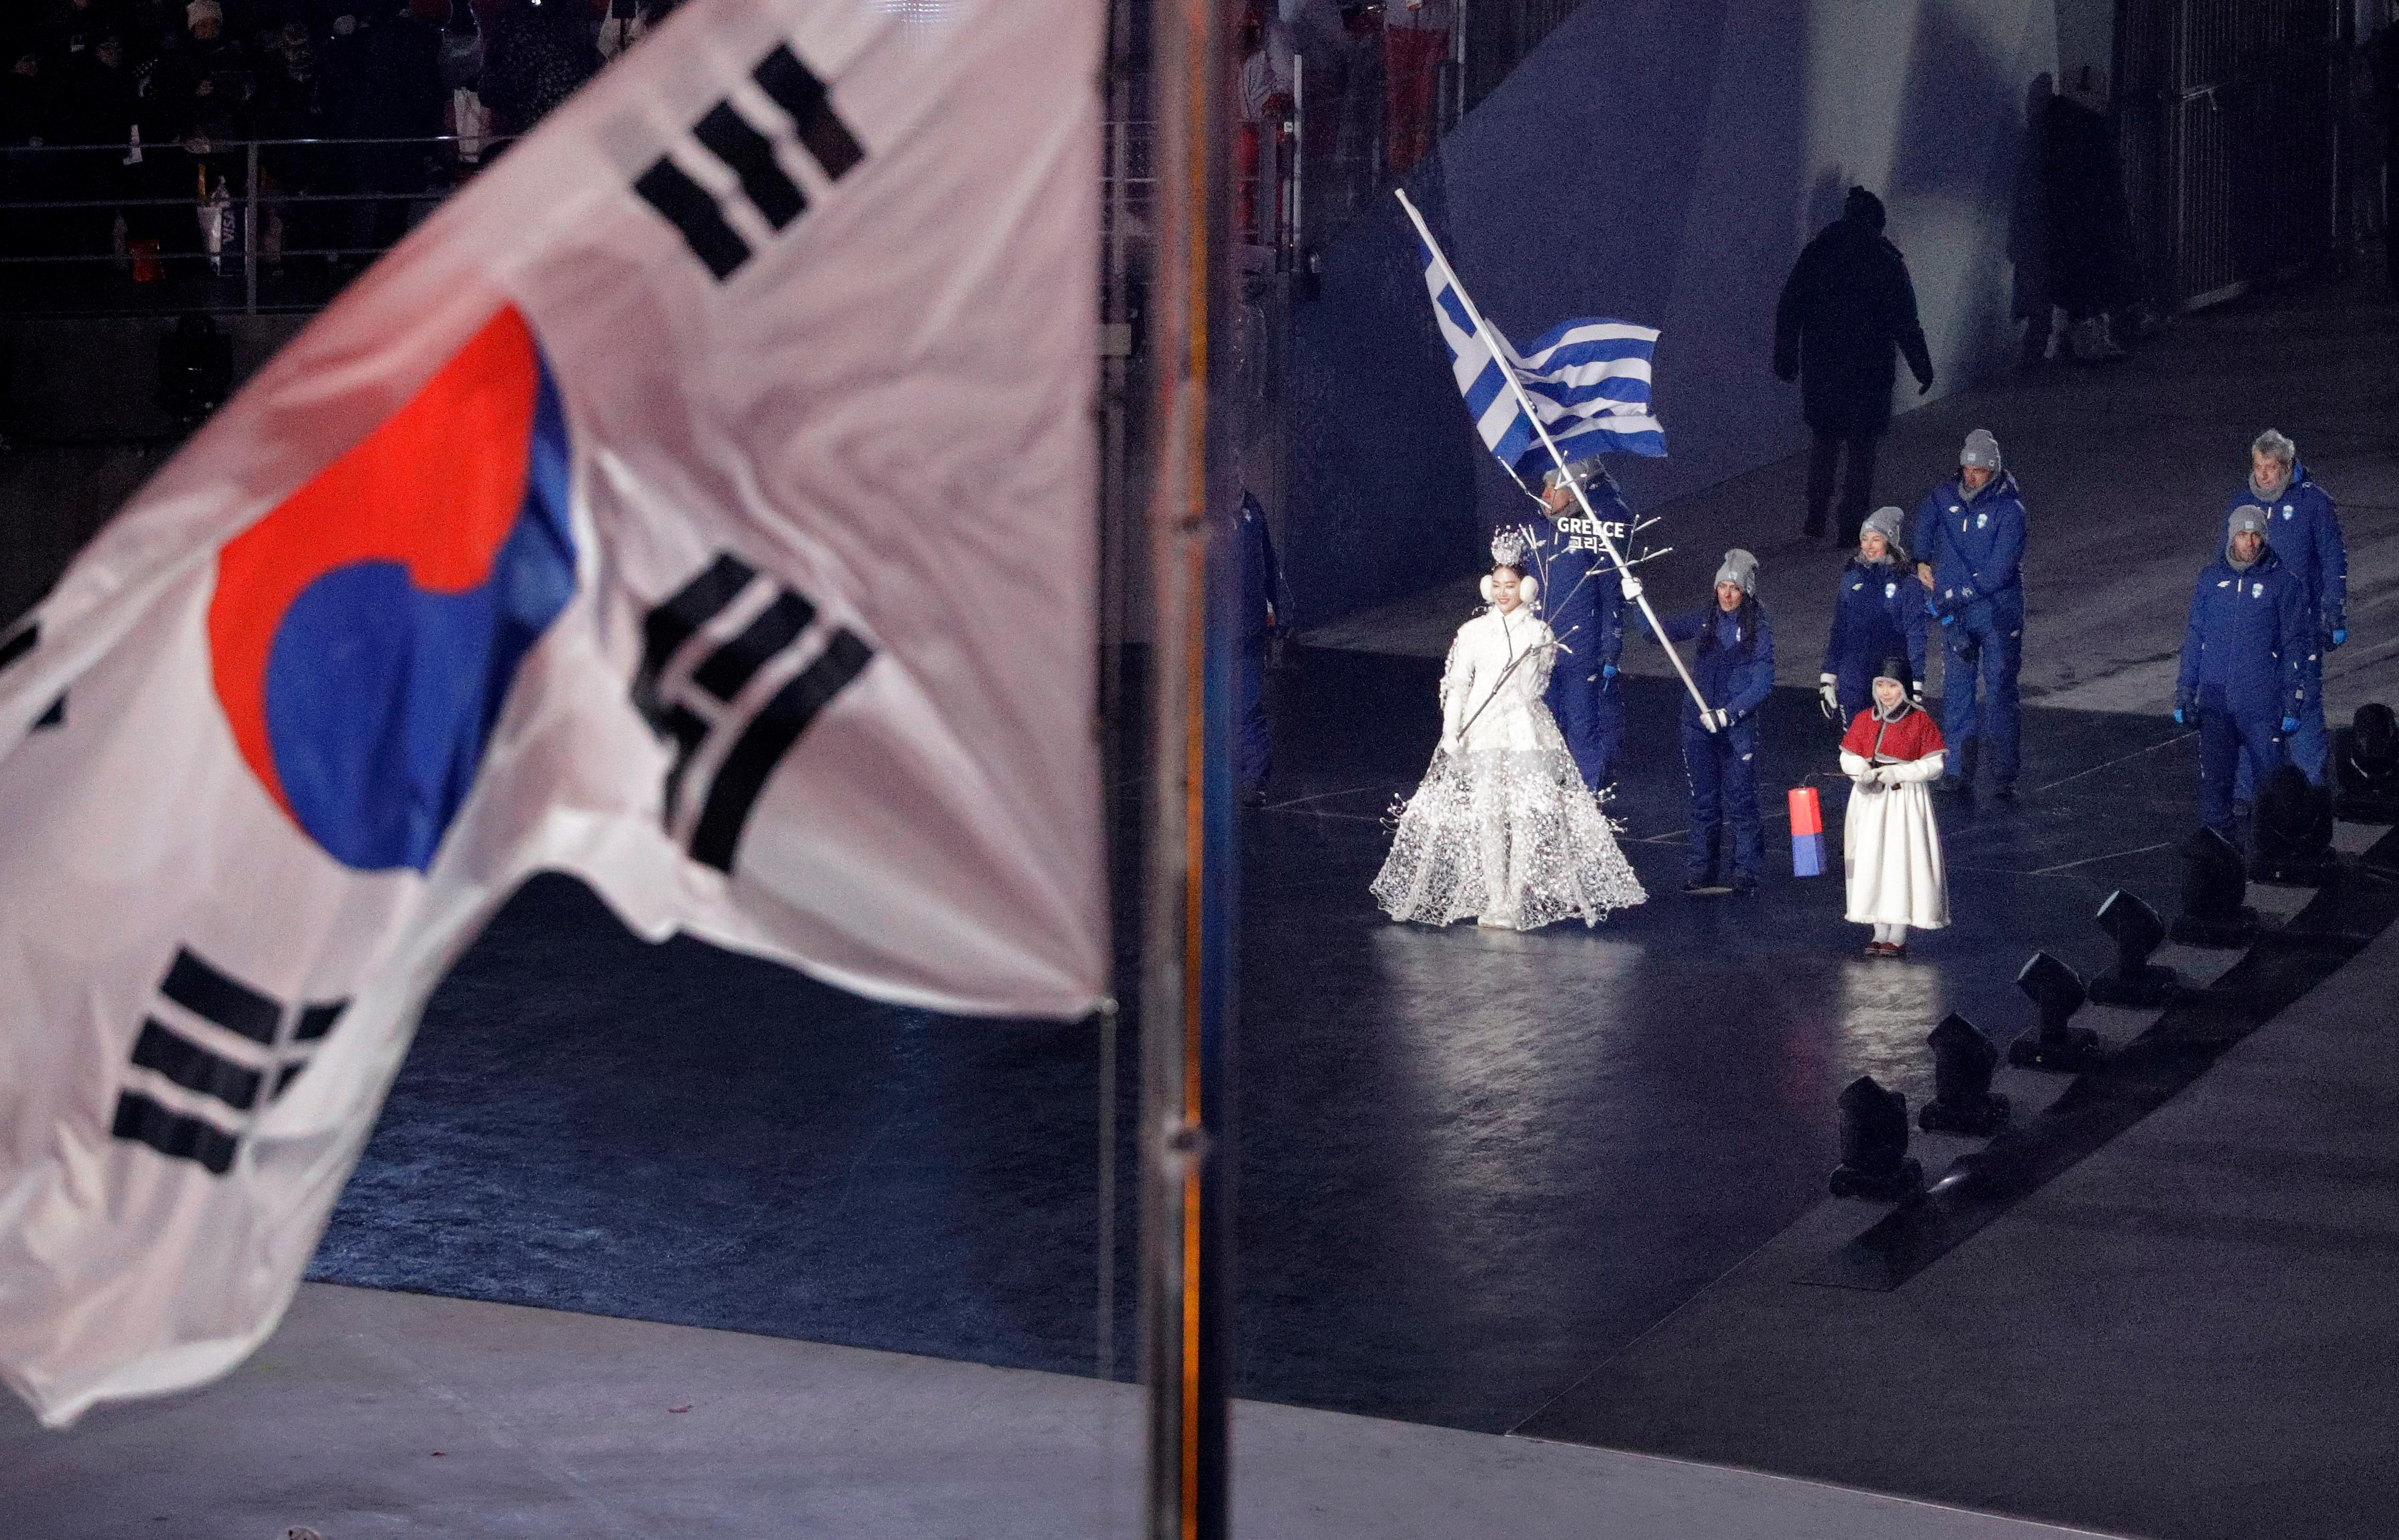 Greece enters the stadium during the opening ceremony of the 2018 Winter Olympics in Pyeongchang, South Korea, Friday, Feb. 9, 2018. (AP Photo/David J. Phillip,Pool)